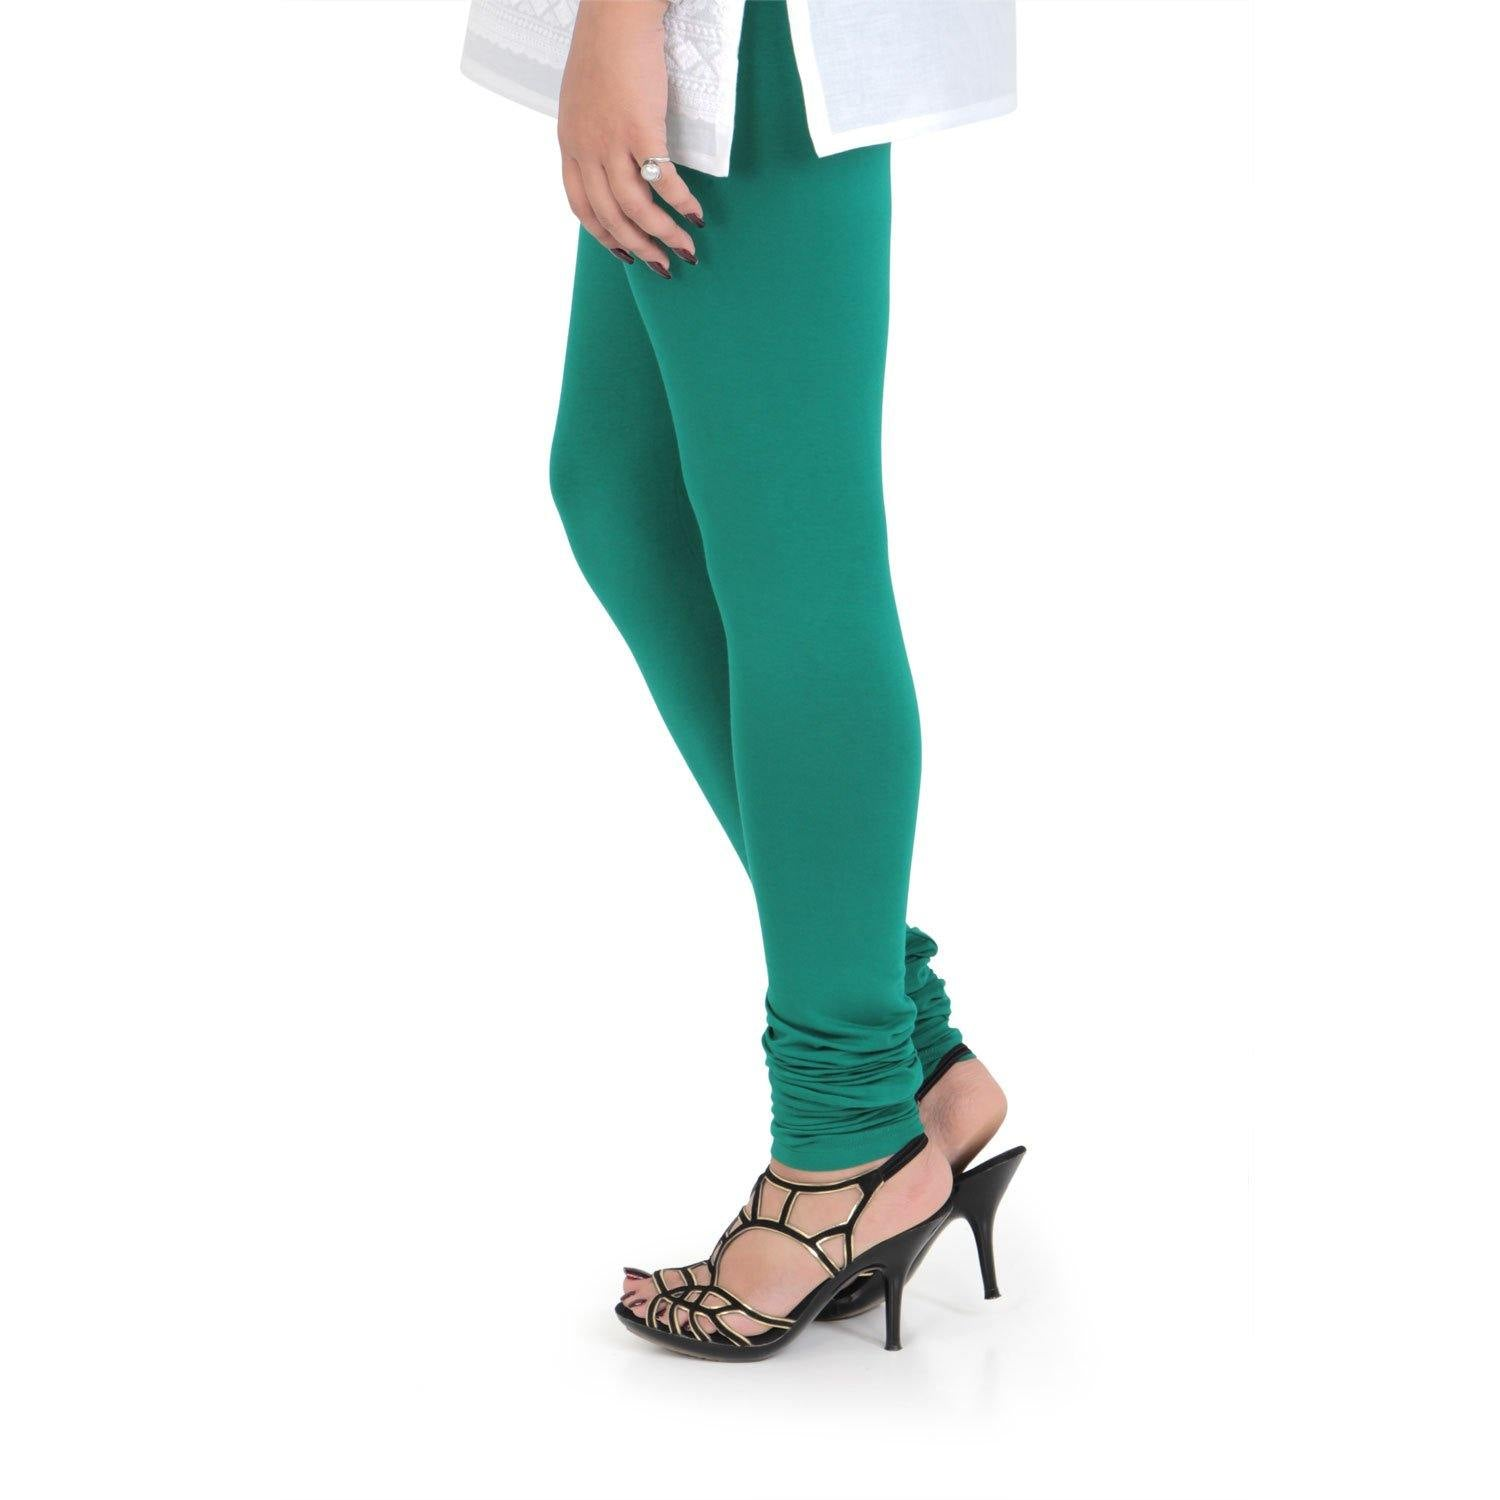 Vami Women's Cotton Stretchable Churidar Legging - Spectra Green